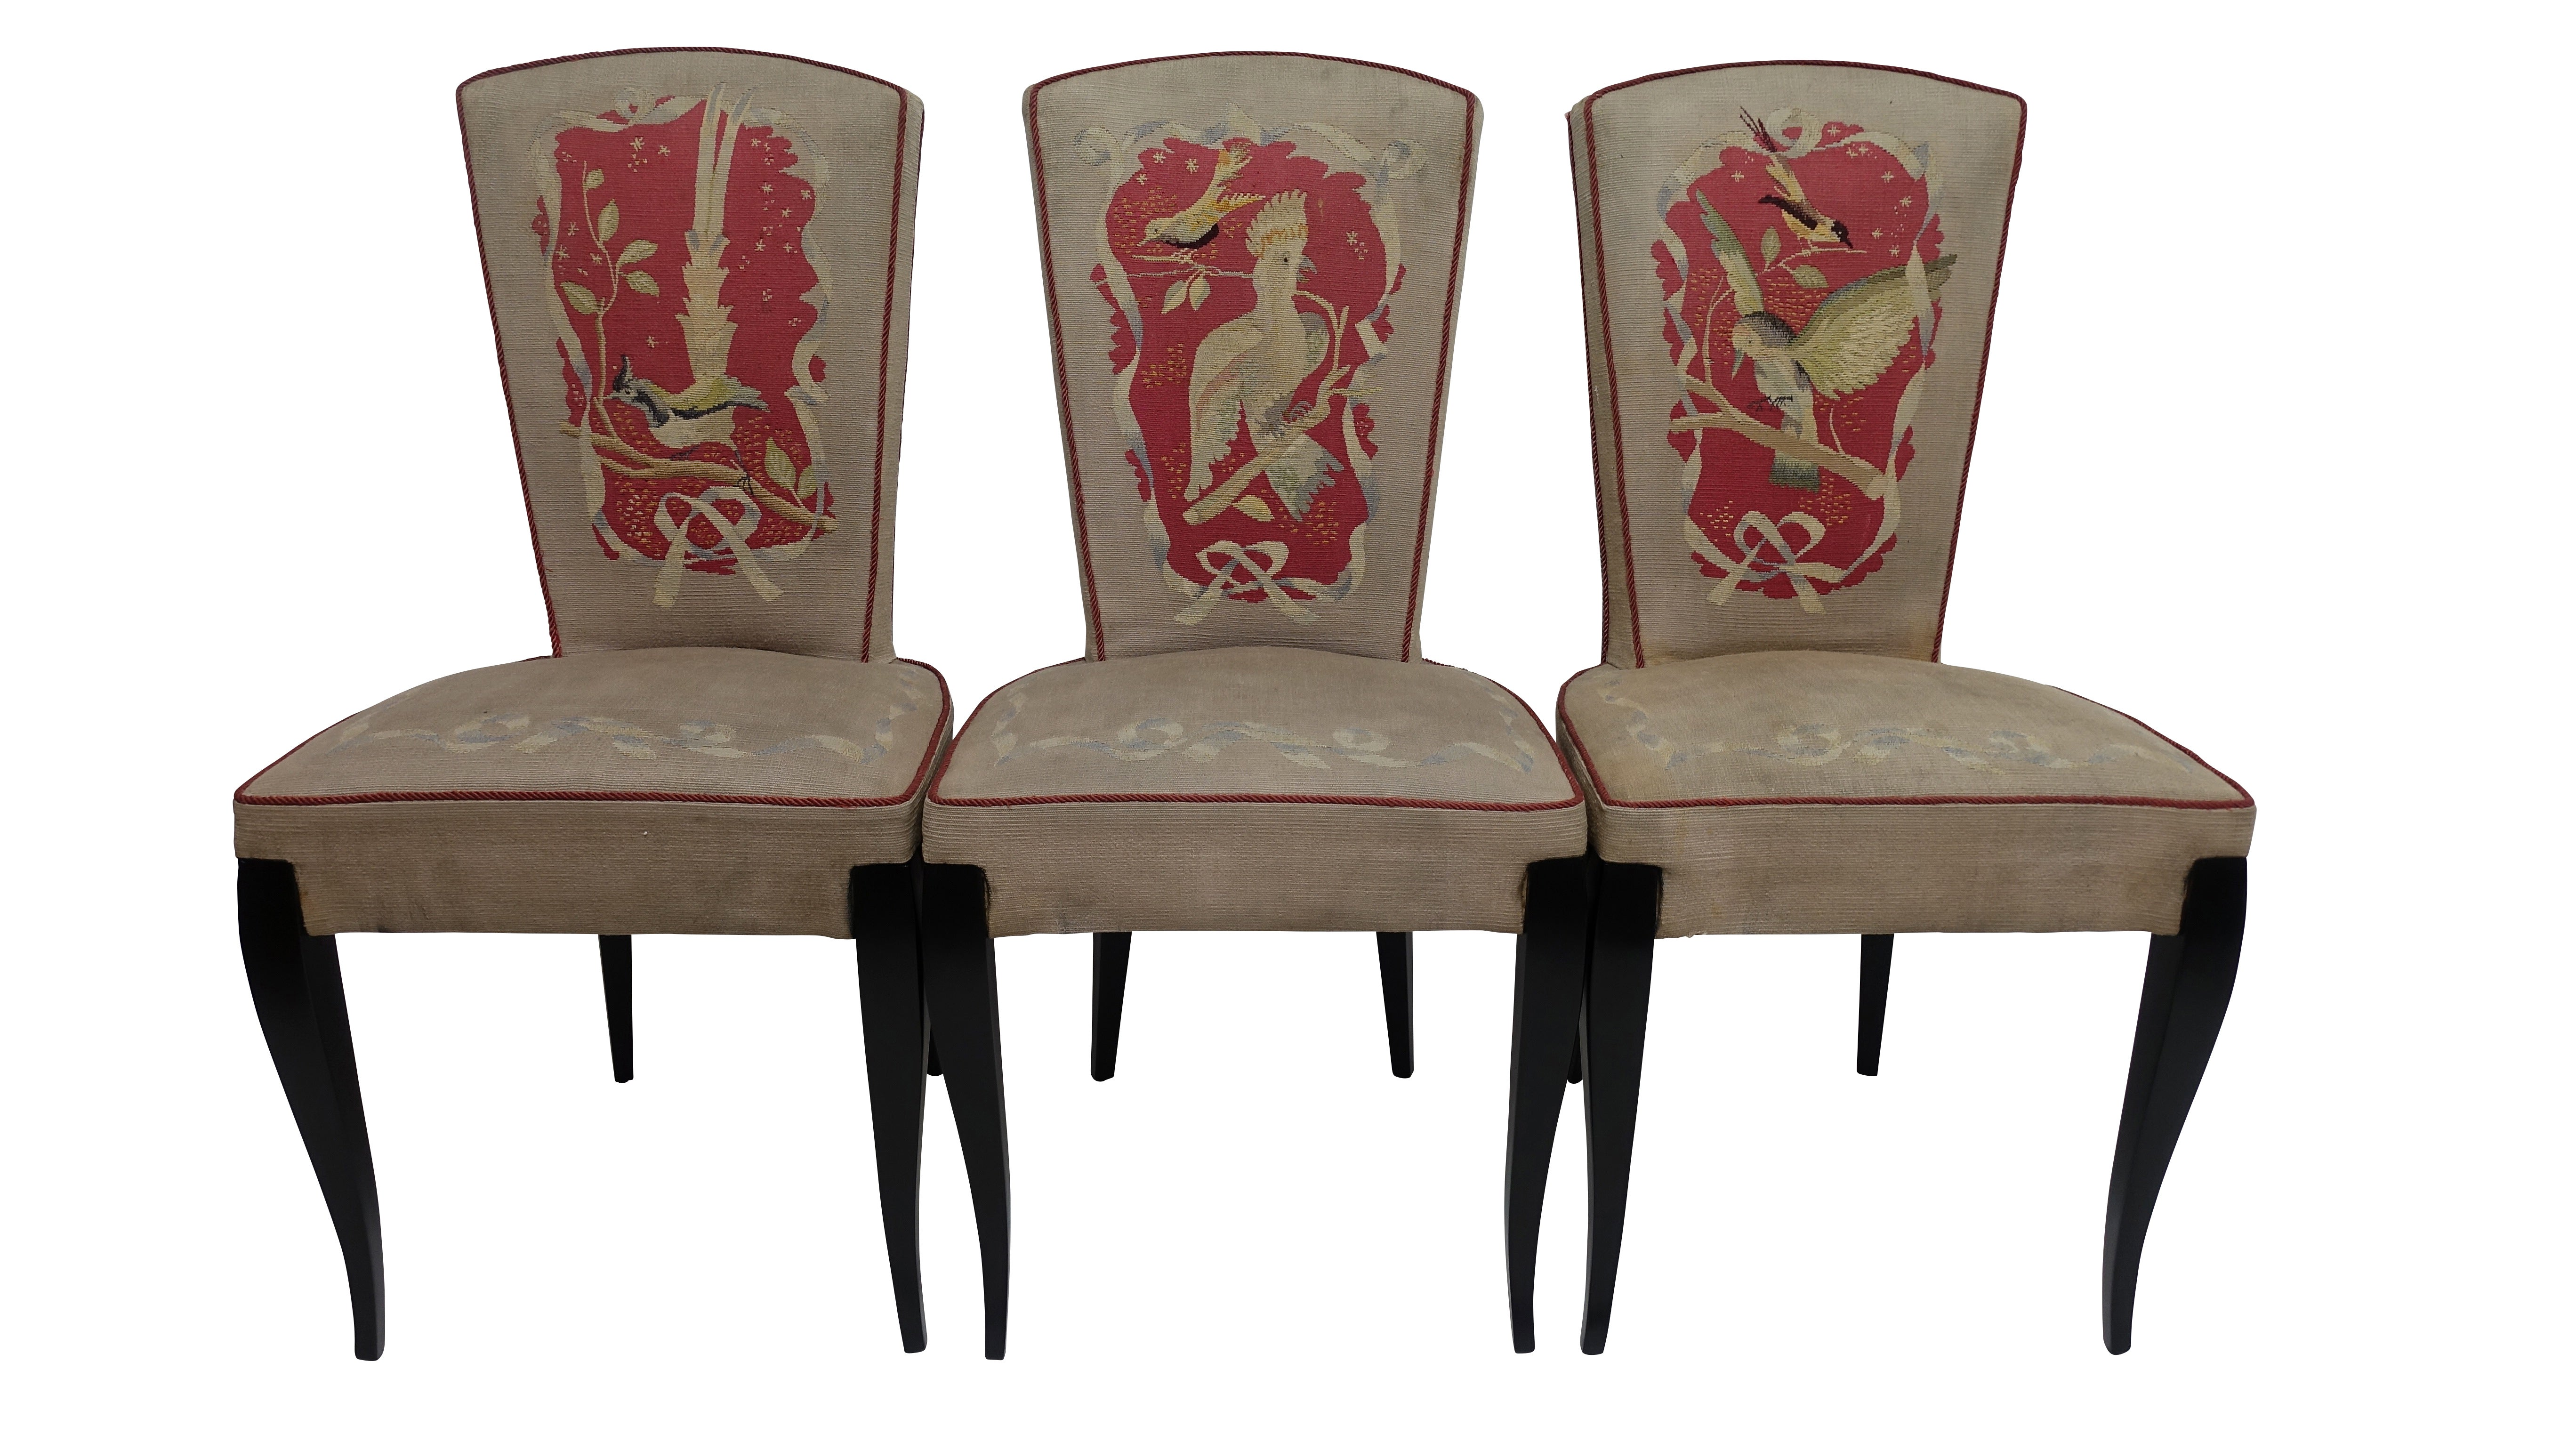 57ac76e898de2 Set of Six French Art Deco Dining Chairs with Bird Scene Tapestry Upholstery  For Sale at 1stdibs